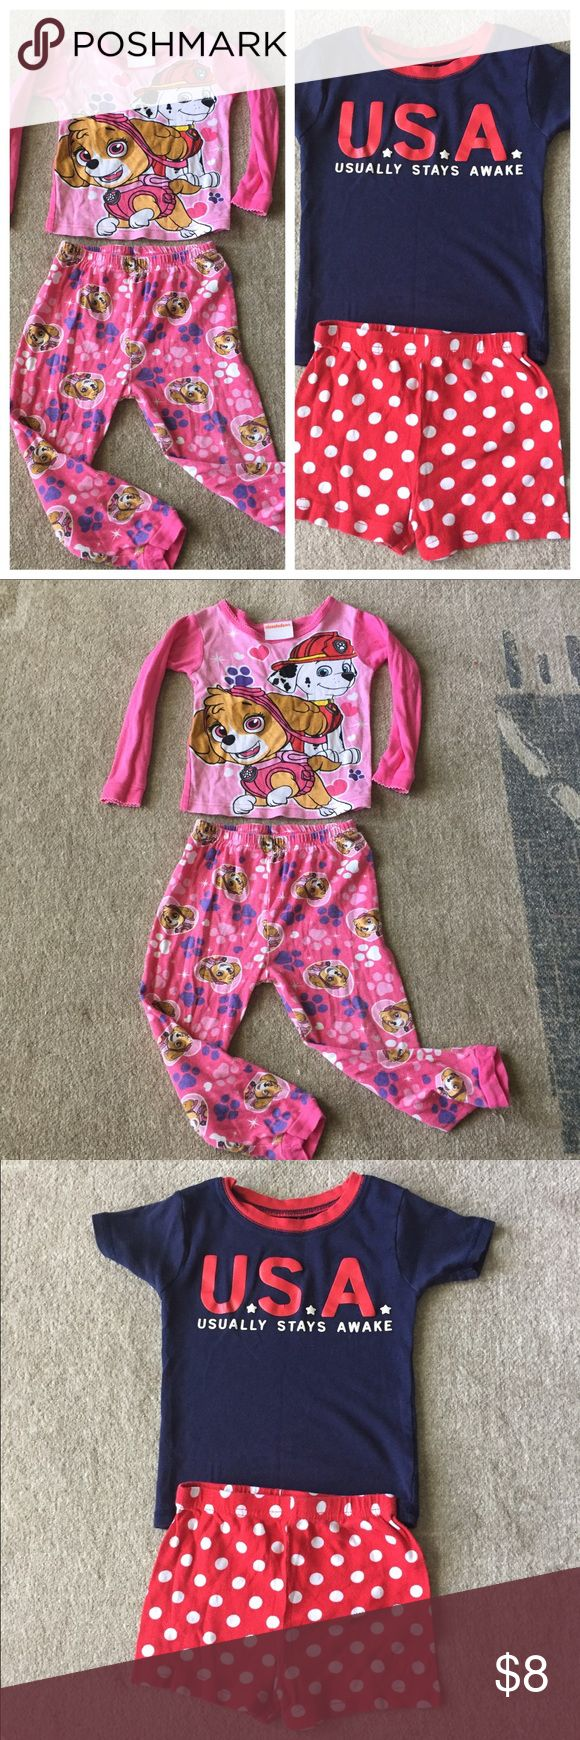 "Bundle 3T Paw Patrol Carters Pajamas Gently used condition with regular signs of wash and wear. No stains or holes. Paw Patrol is lightweight and long sleeves. Carters graphic ""USA"" has small cracks on the corners (see photo). Nickelodeon & Carters  Pajamas Pajama Sets"